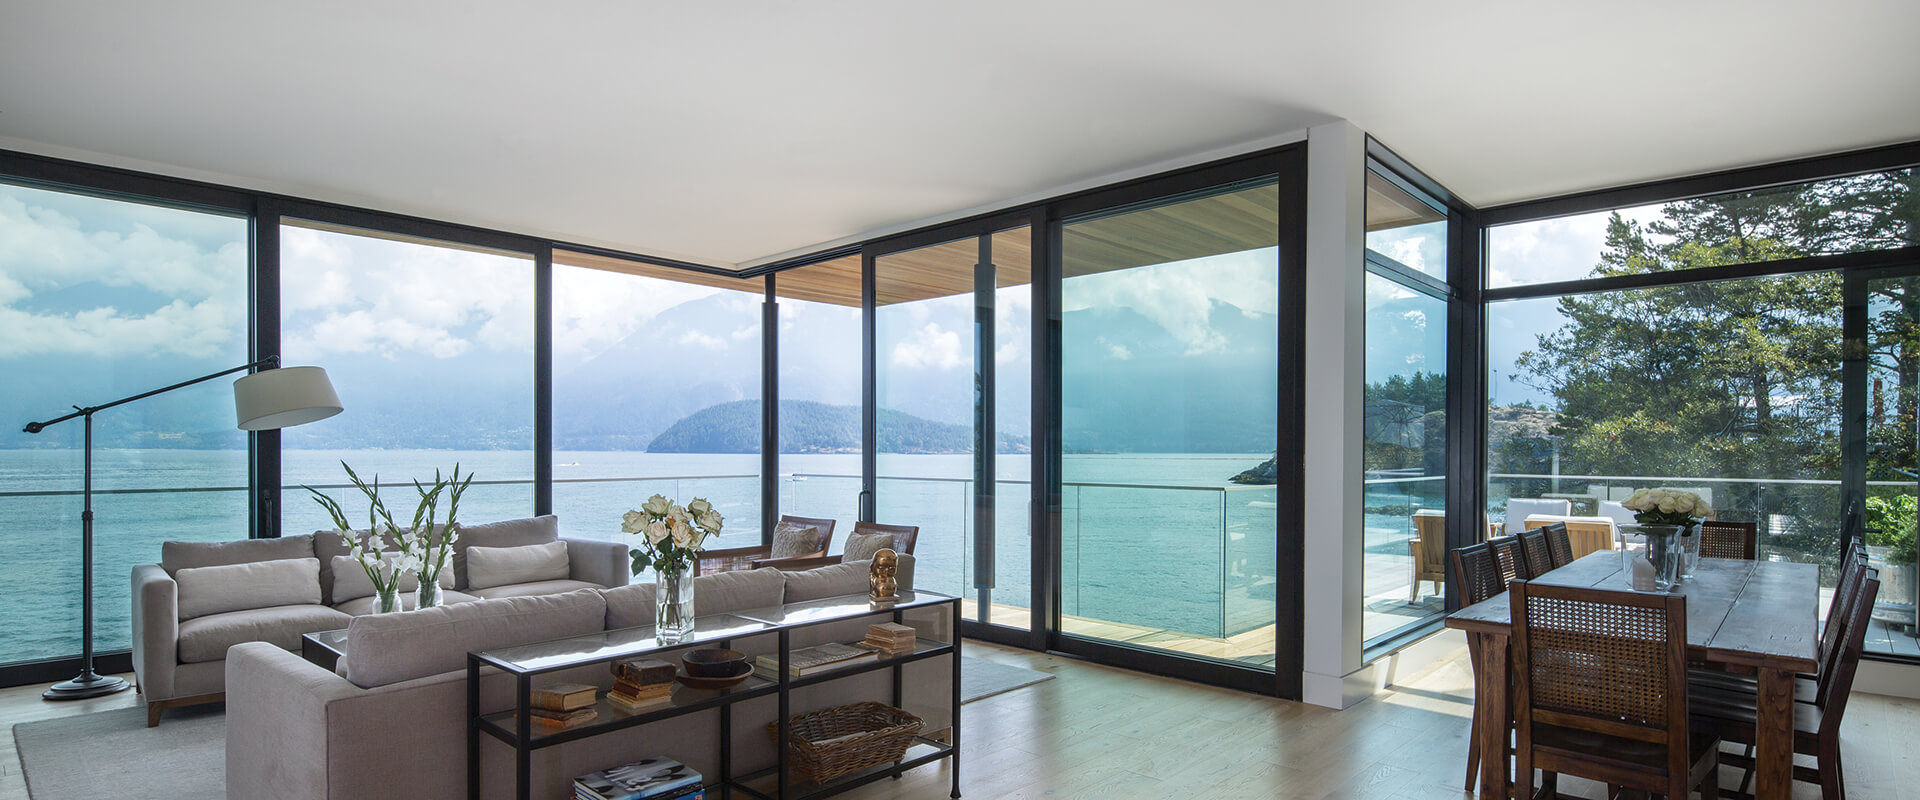 Cliffhanger Contemporary Home with TerraSpan Lift and Slide Door AH412